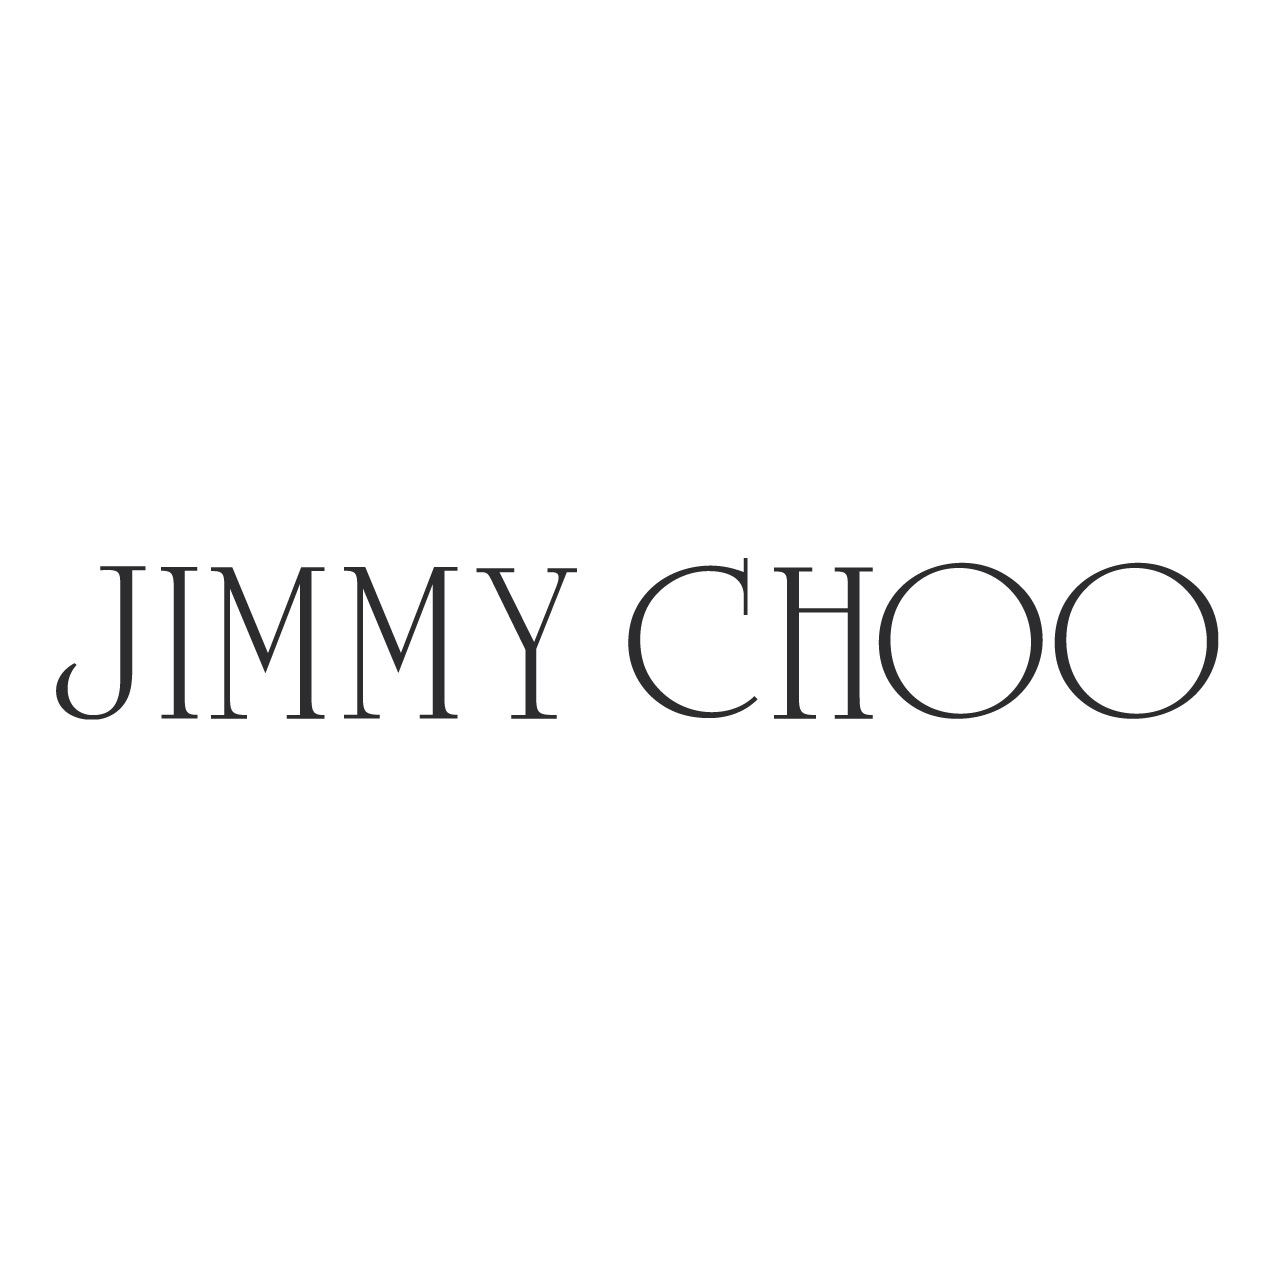 Cordwainers B.A. Dato Jimmy Choo Award 2015 (shortlisted)